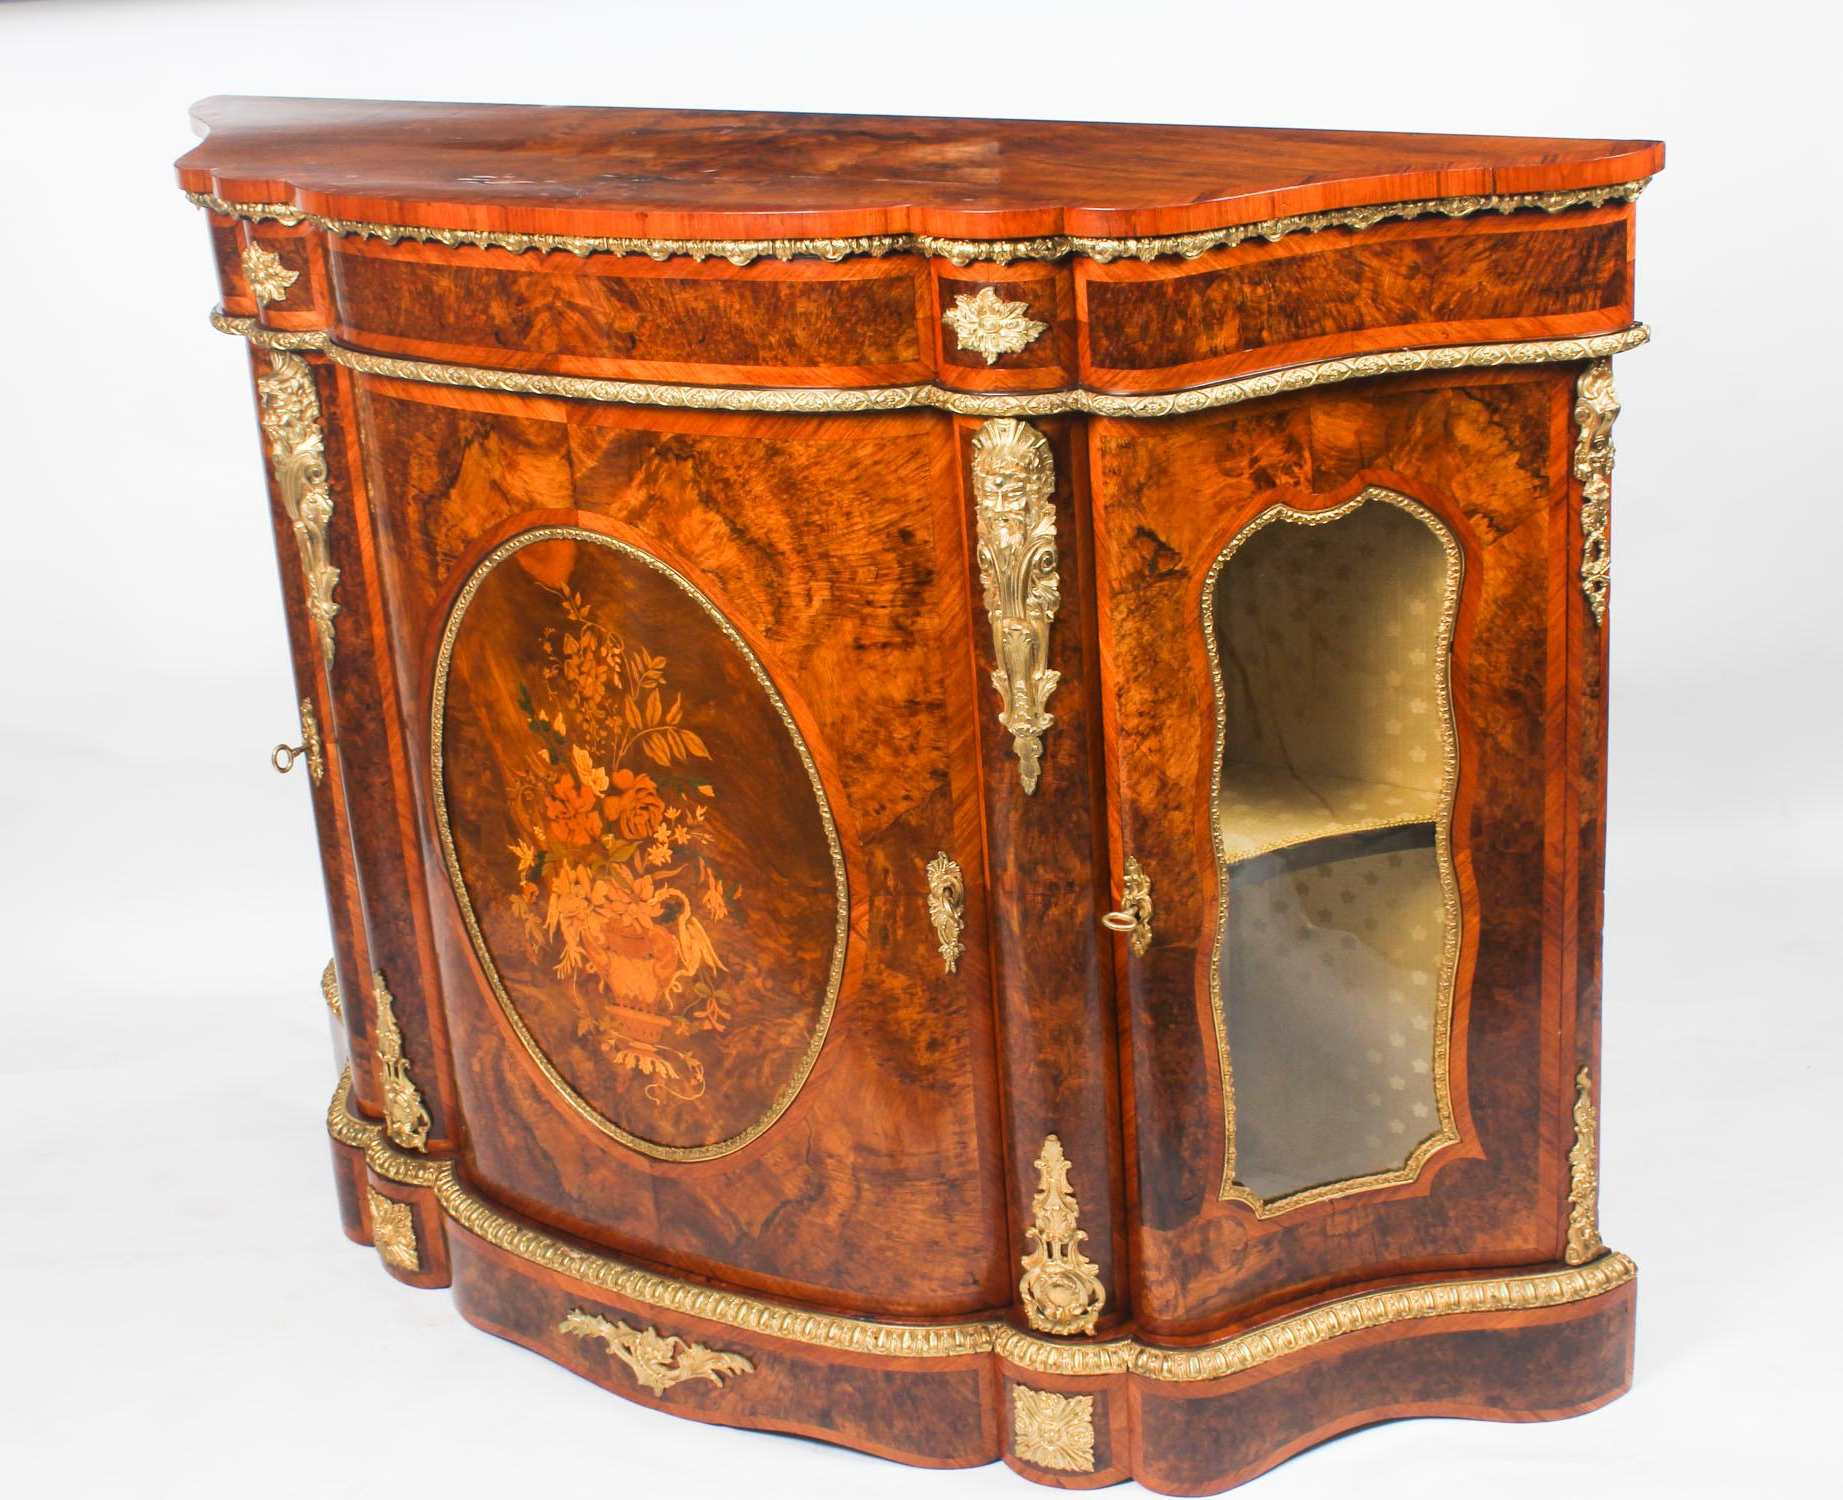 Antique Victorian Serpentine Burr Walnut Marquetry Credenza With Floral Beauty Credenzas (View 2 of 20)